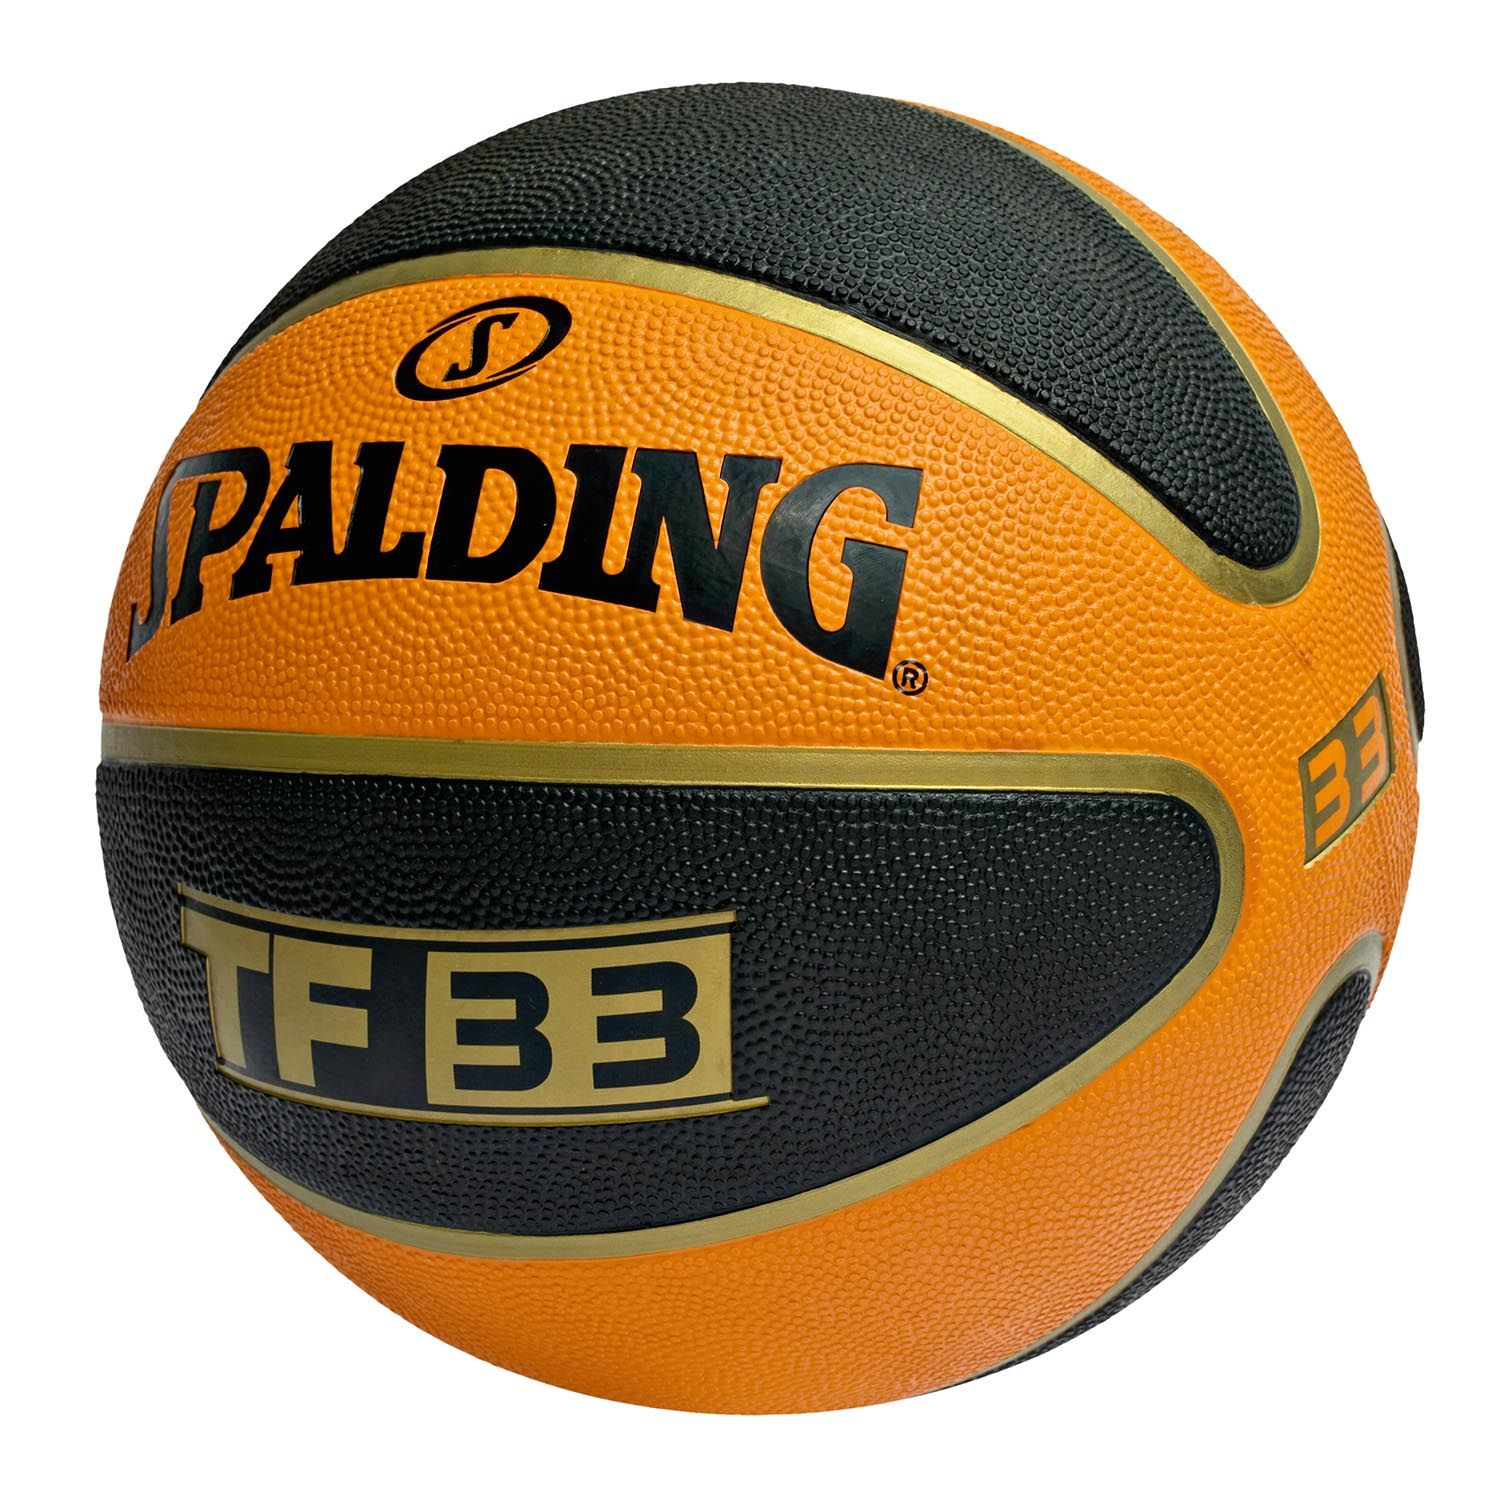 Outdoor 33 Spalding Tf 33 Outdoor Basketball - Size 7 - Sweatband.com